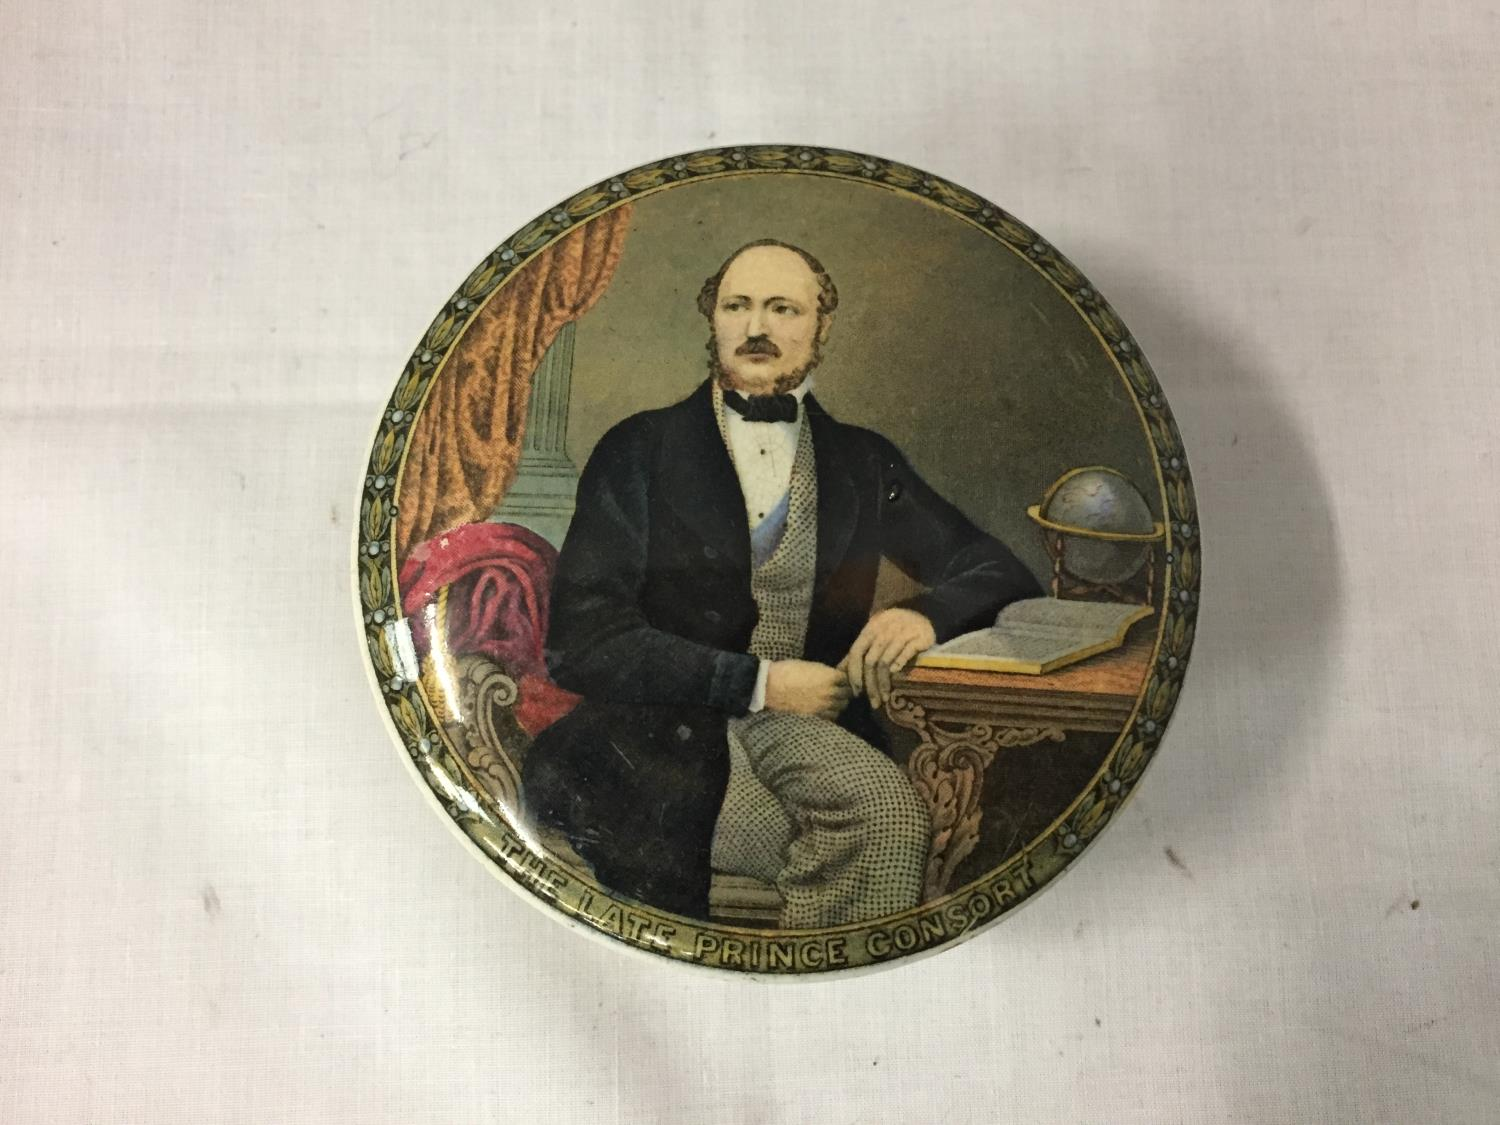 A PRATT WARE LIDDED POT 'THE LATE PRINCE CONSORT' (VICTORIA'S HUSBAND) - Image 3 of 5